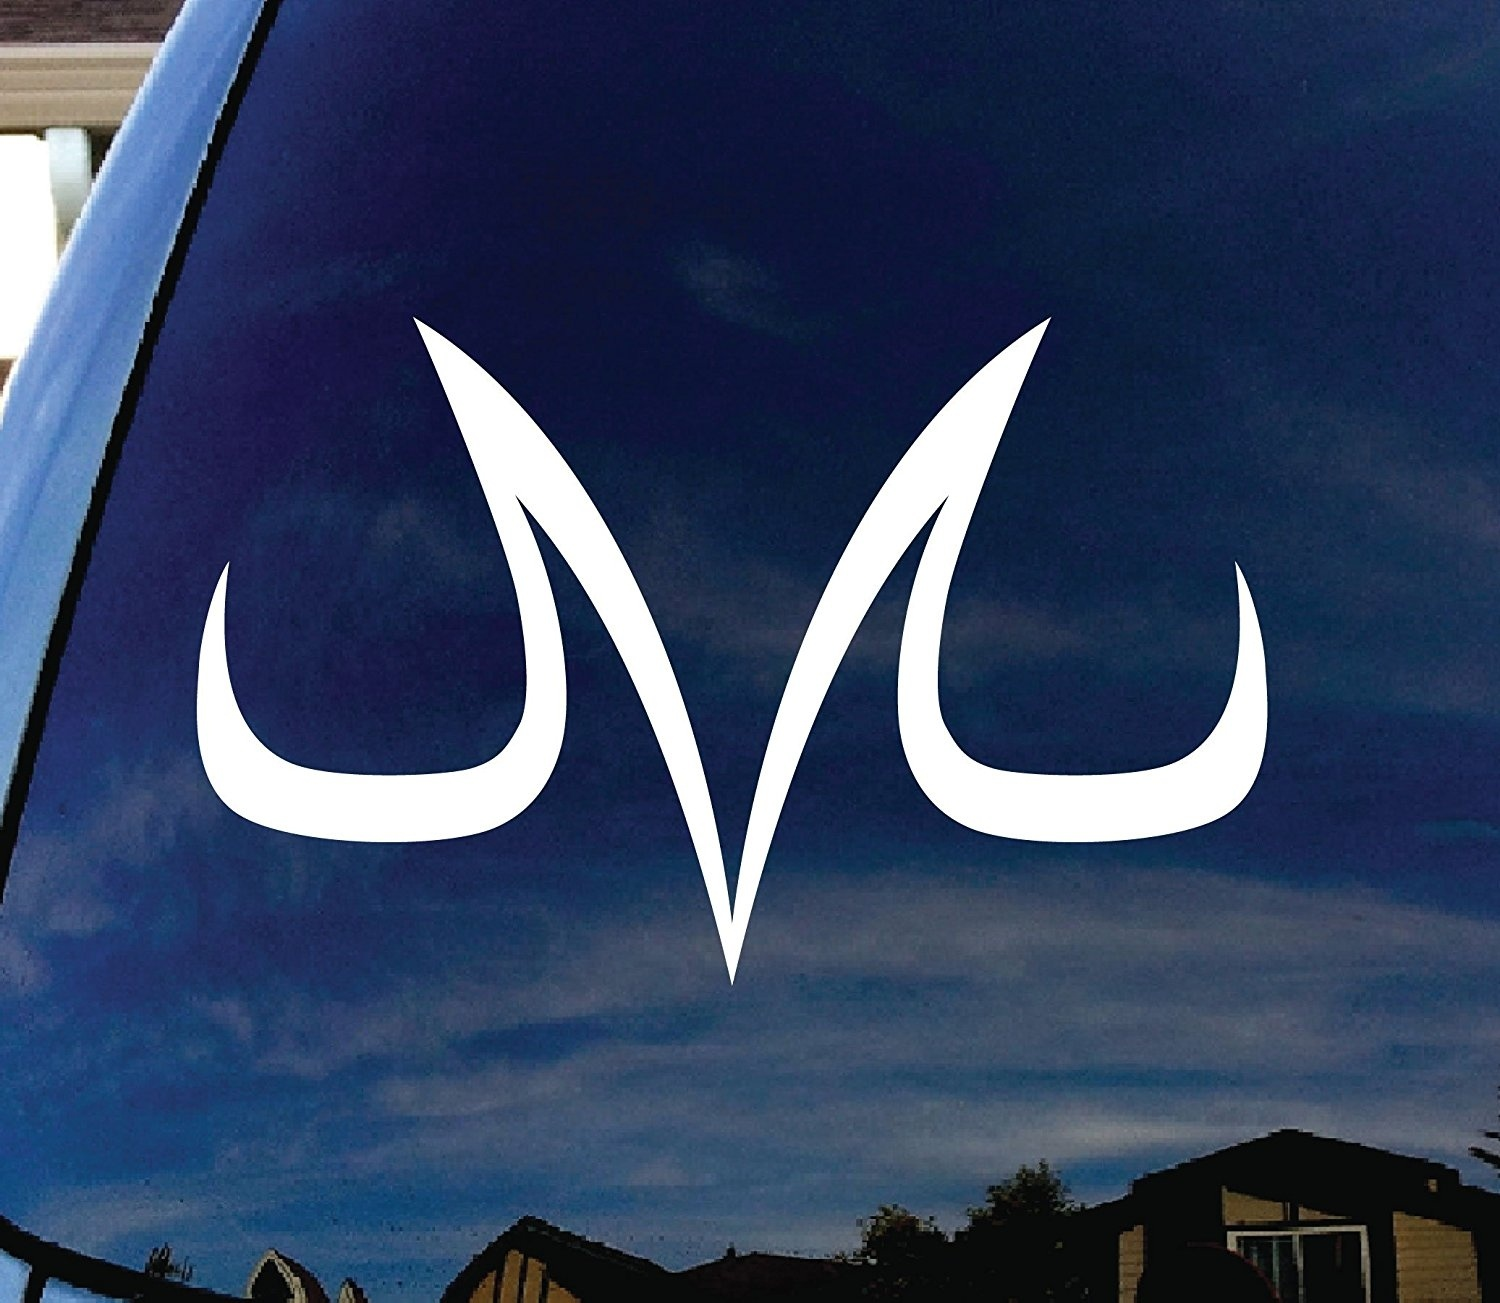 Vegeta Majin Dragonball Z Window Vinyl Decal Sticker 6